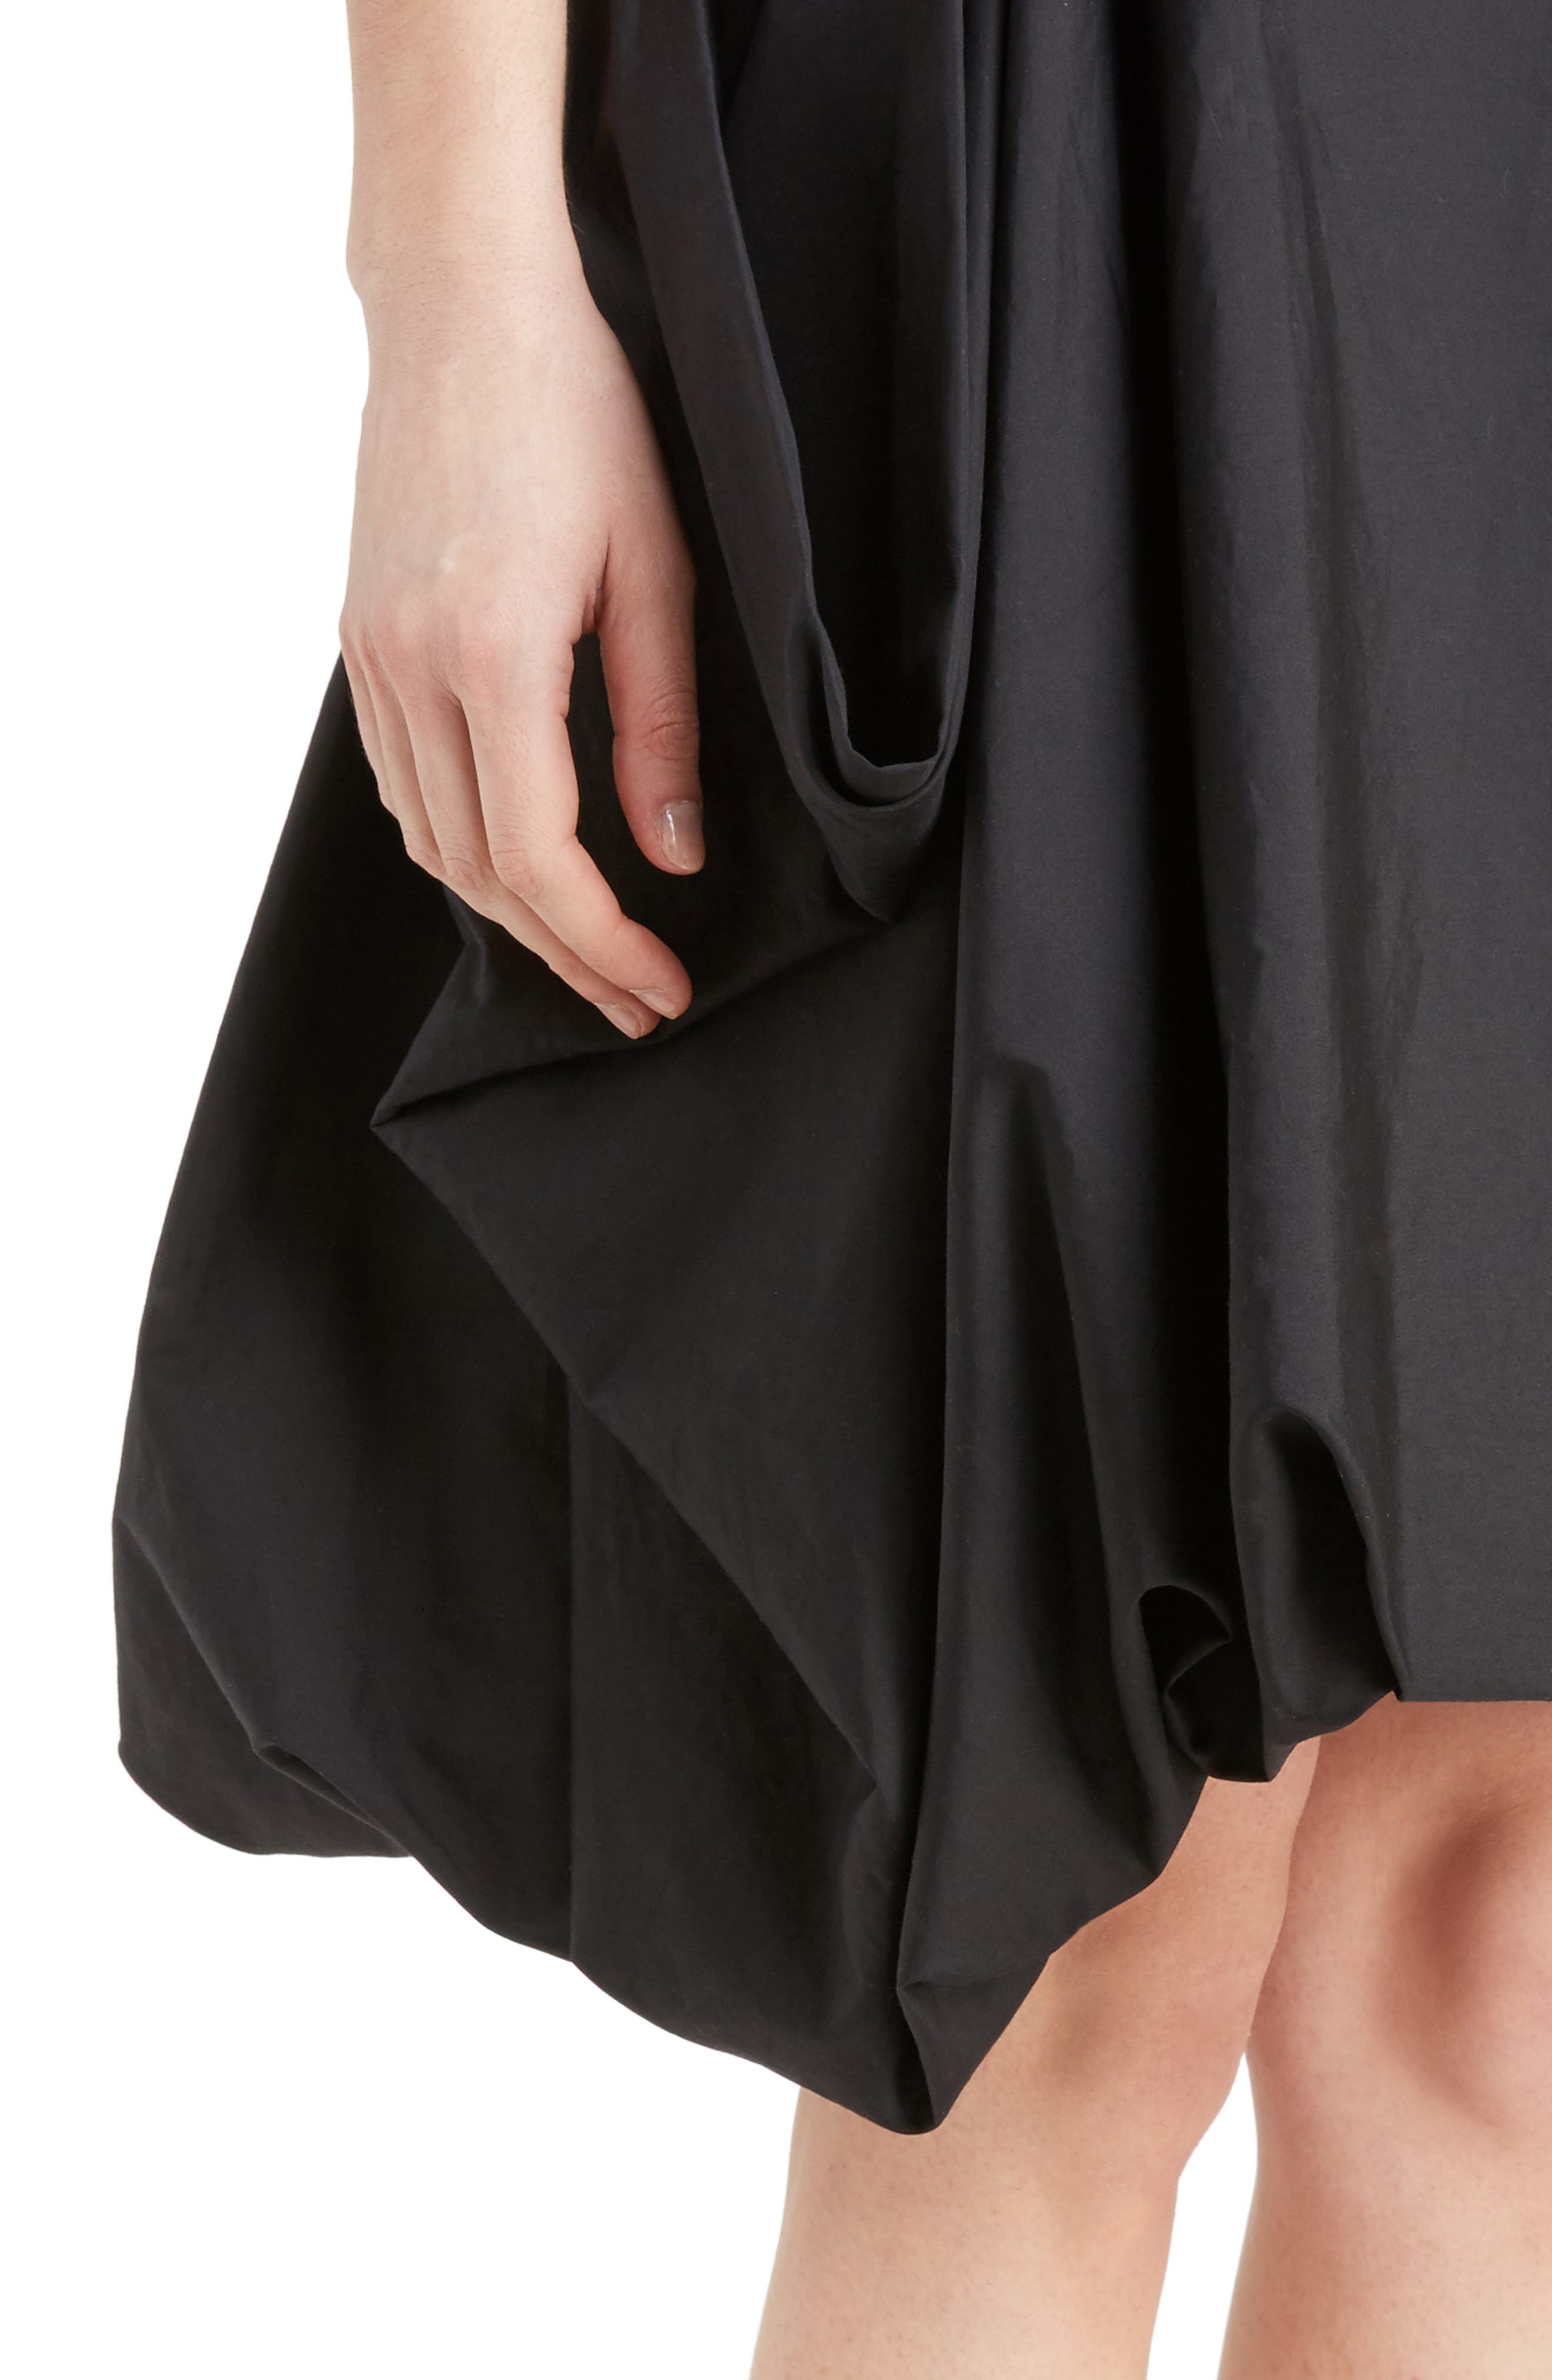 J.W.ANDERSON Drape Pockets Pleated Skirt,                             Alternate thumbnail 4, color,                             001